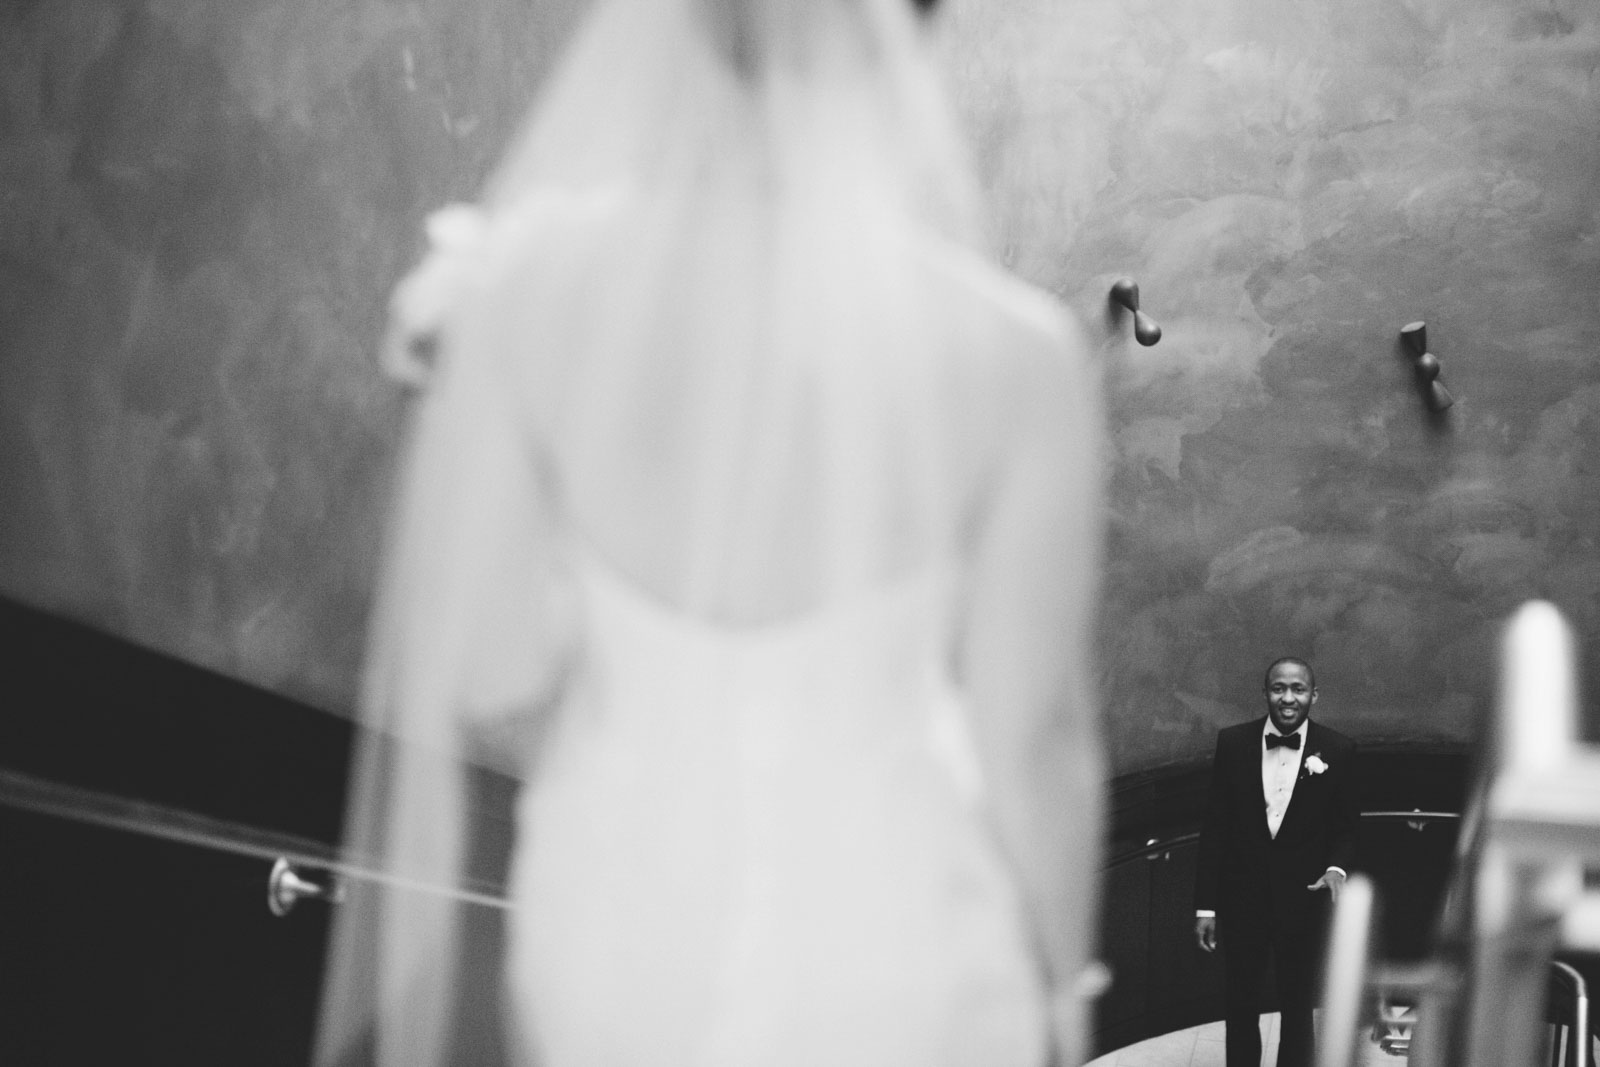 bride stands at the top of the stairs as groom smiles at seeing bride for the first time